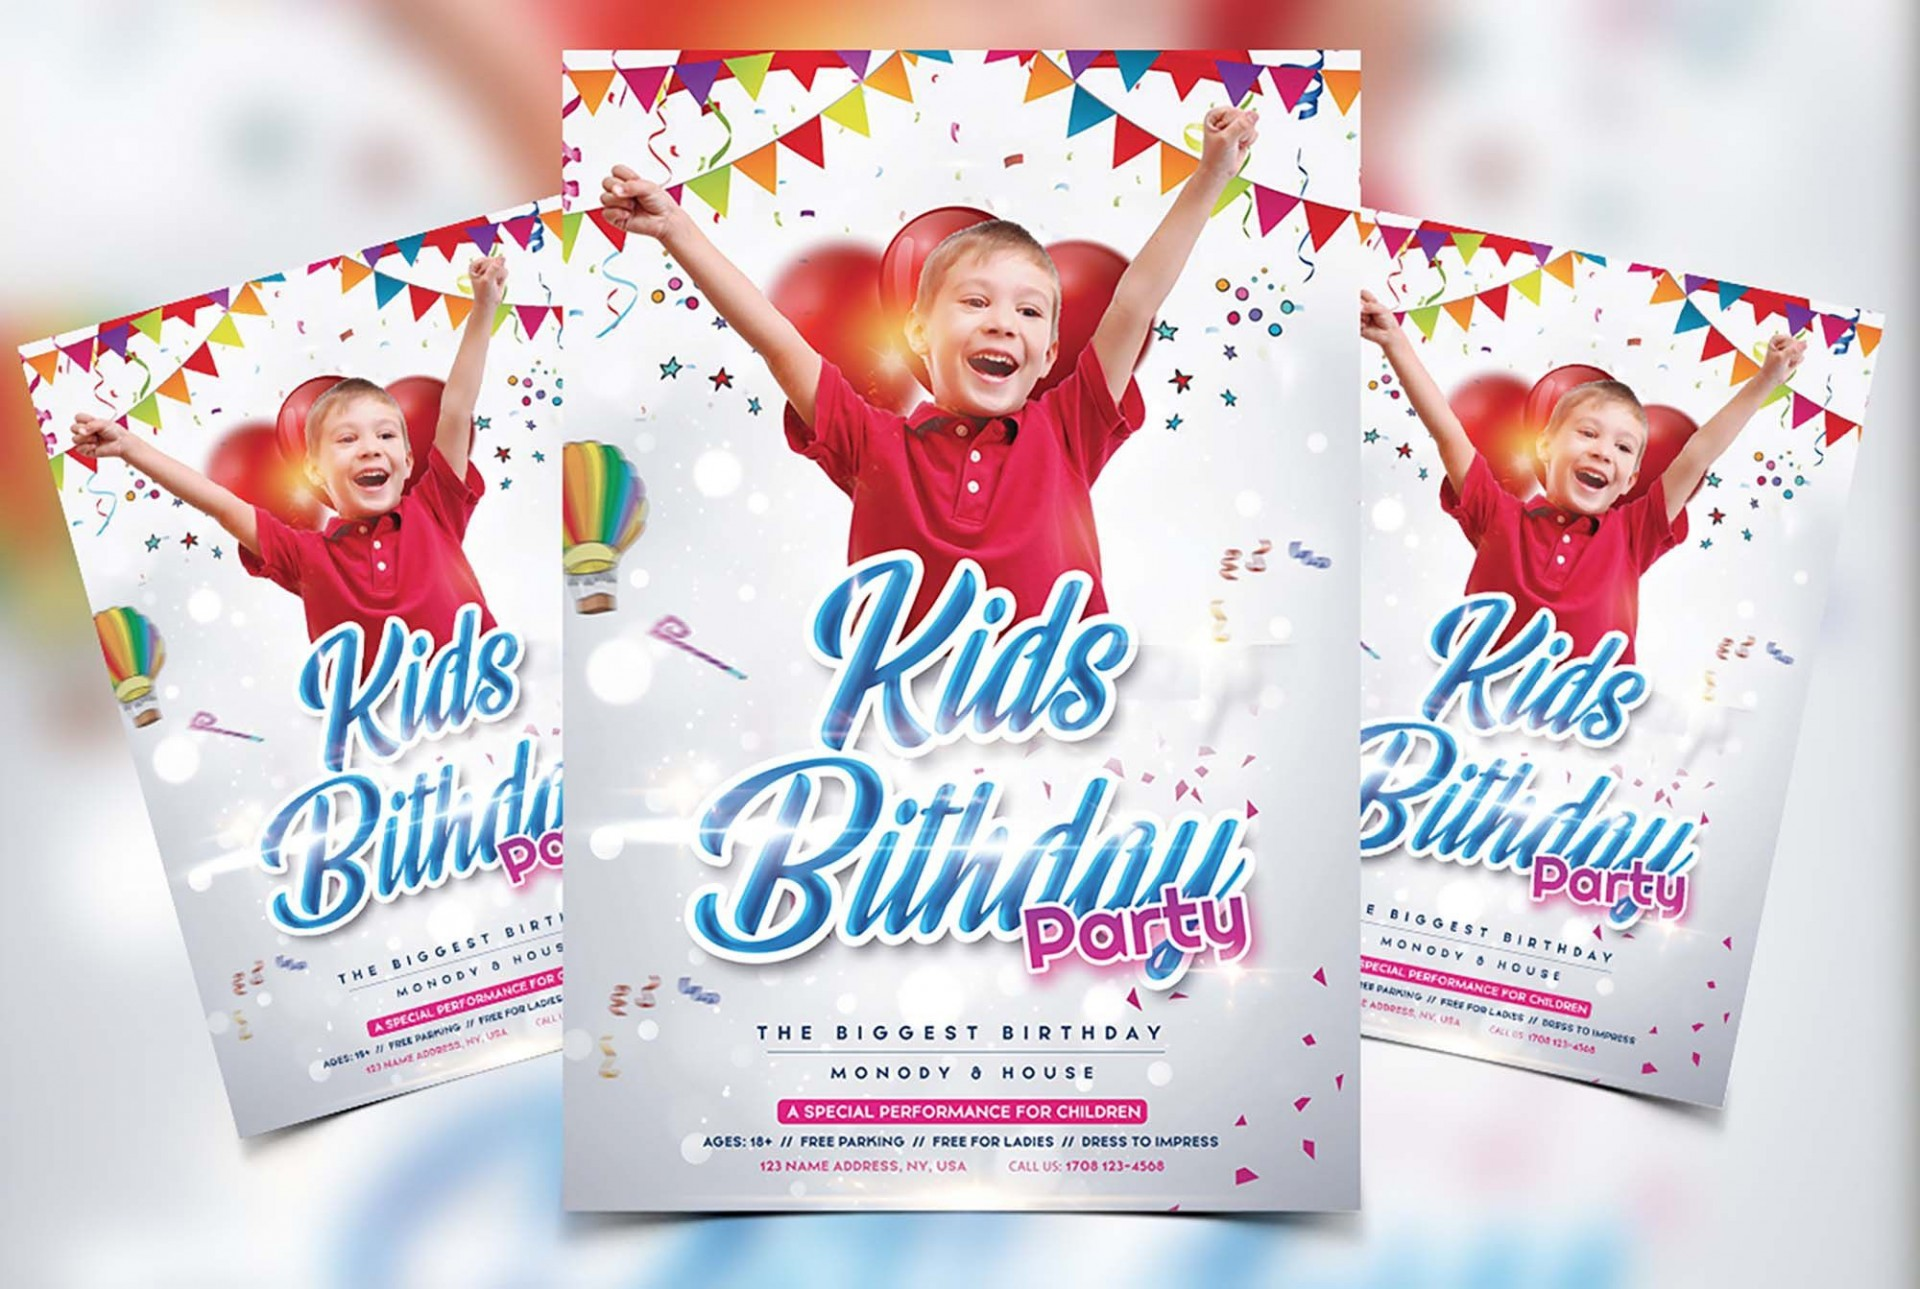 009 Breathtaking Free Birthday Flyer Template Psd Example  Foam Party - Neon Glow Download Pool1920